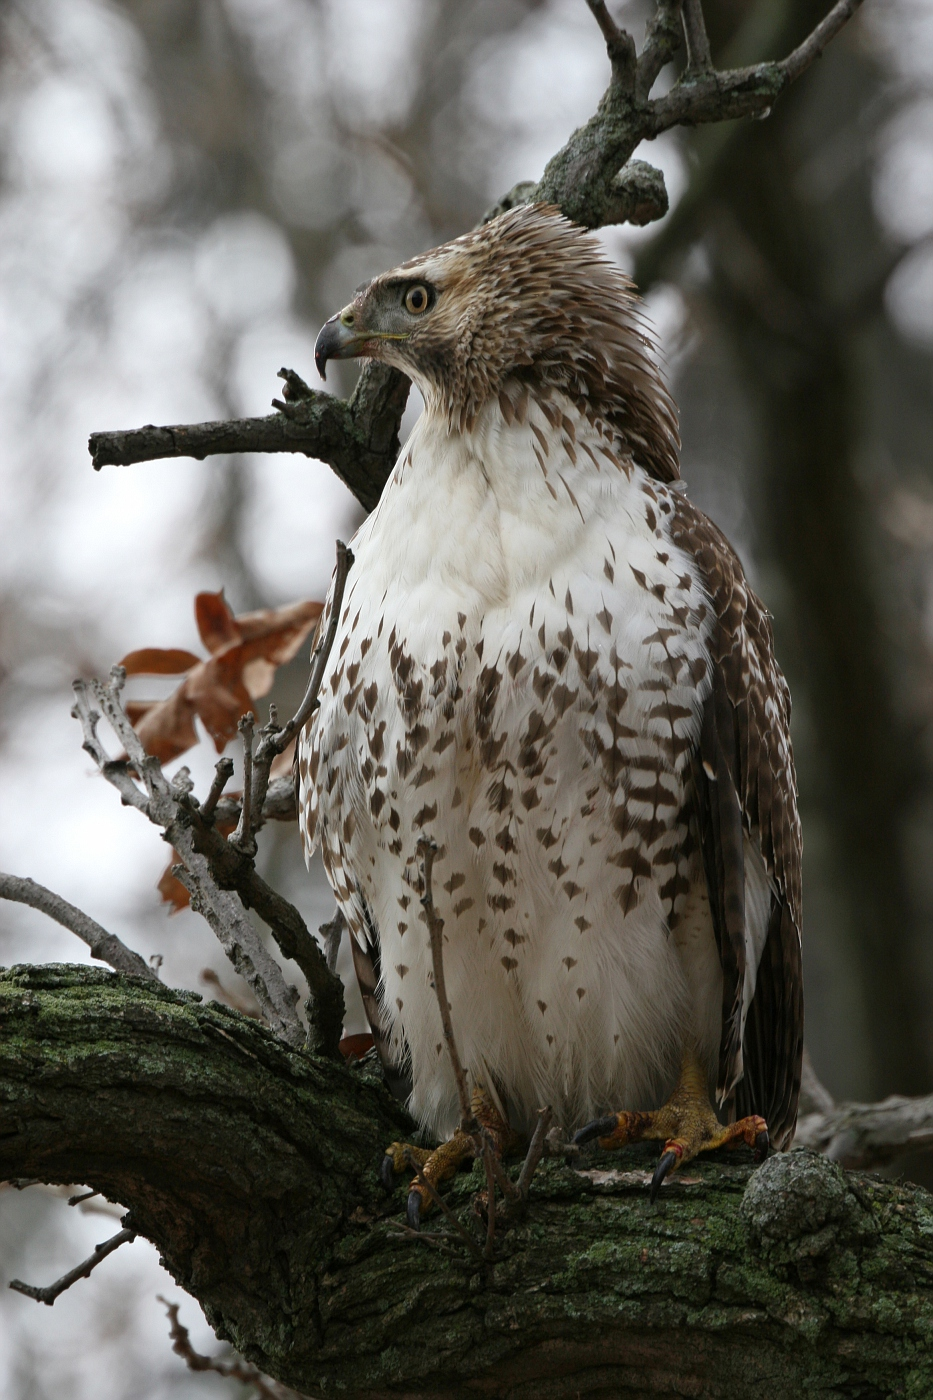 Juvenile Red Tailed Hawk #2